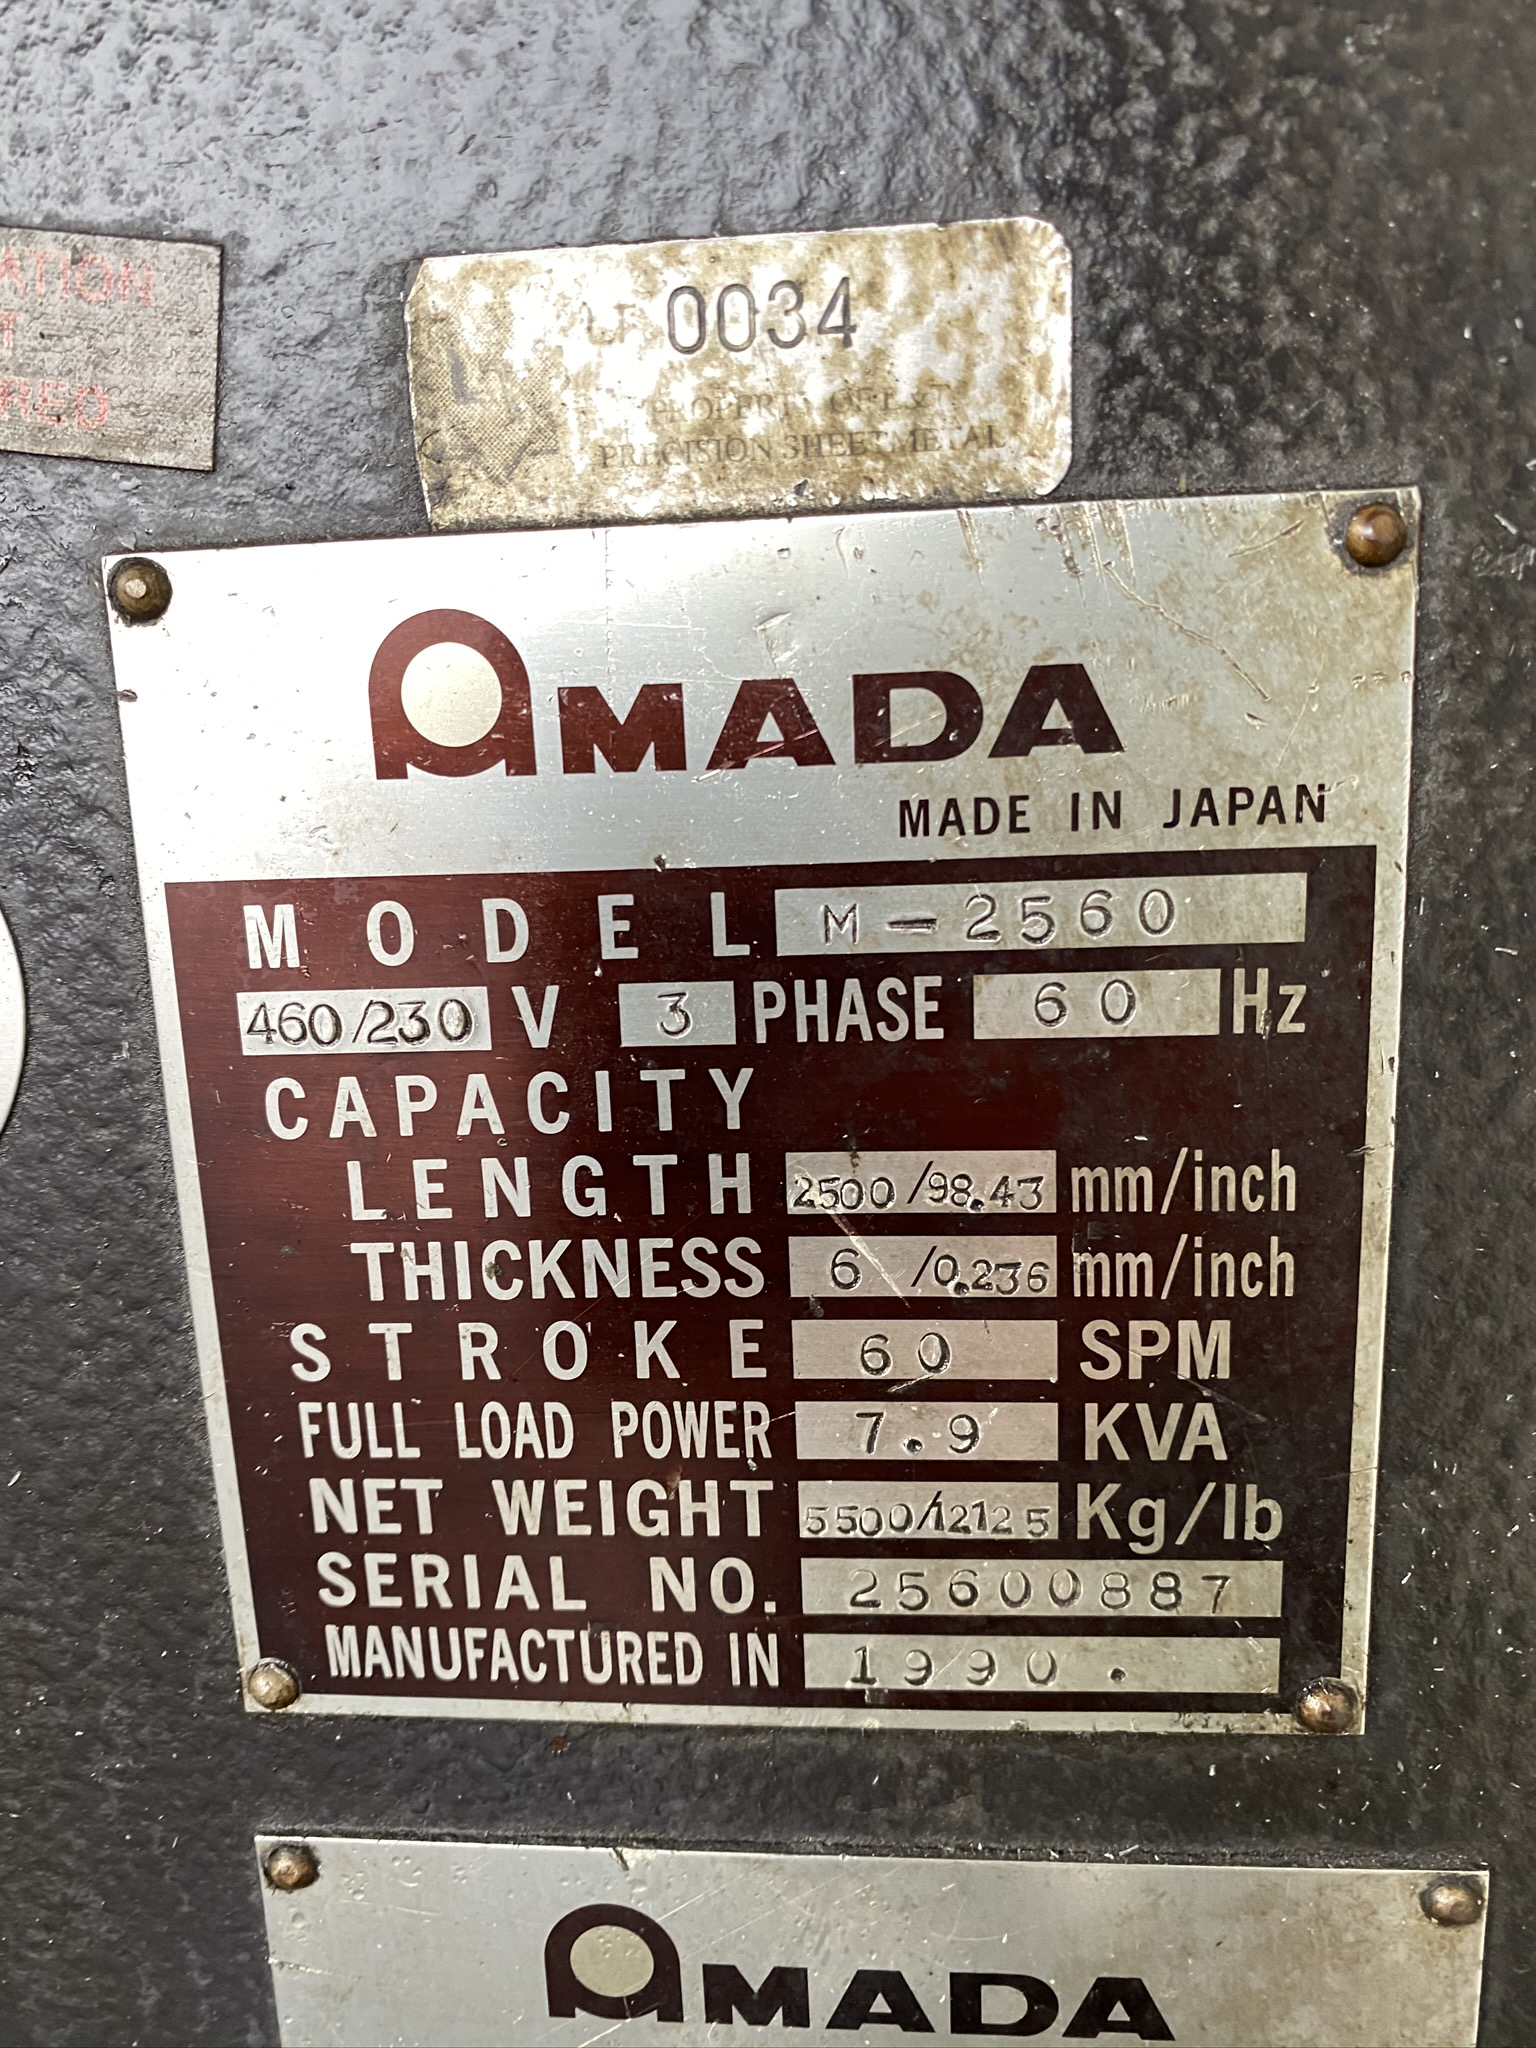 1990 AMADA M-2560 SHEAR, 2500 MM, LENGTH, 6 MM THICKNESS, MECHANICAL, SHEET SUPPORTS - Image 14 of 14